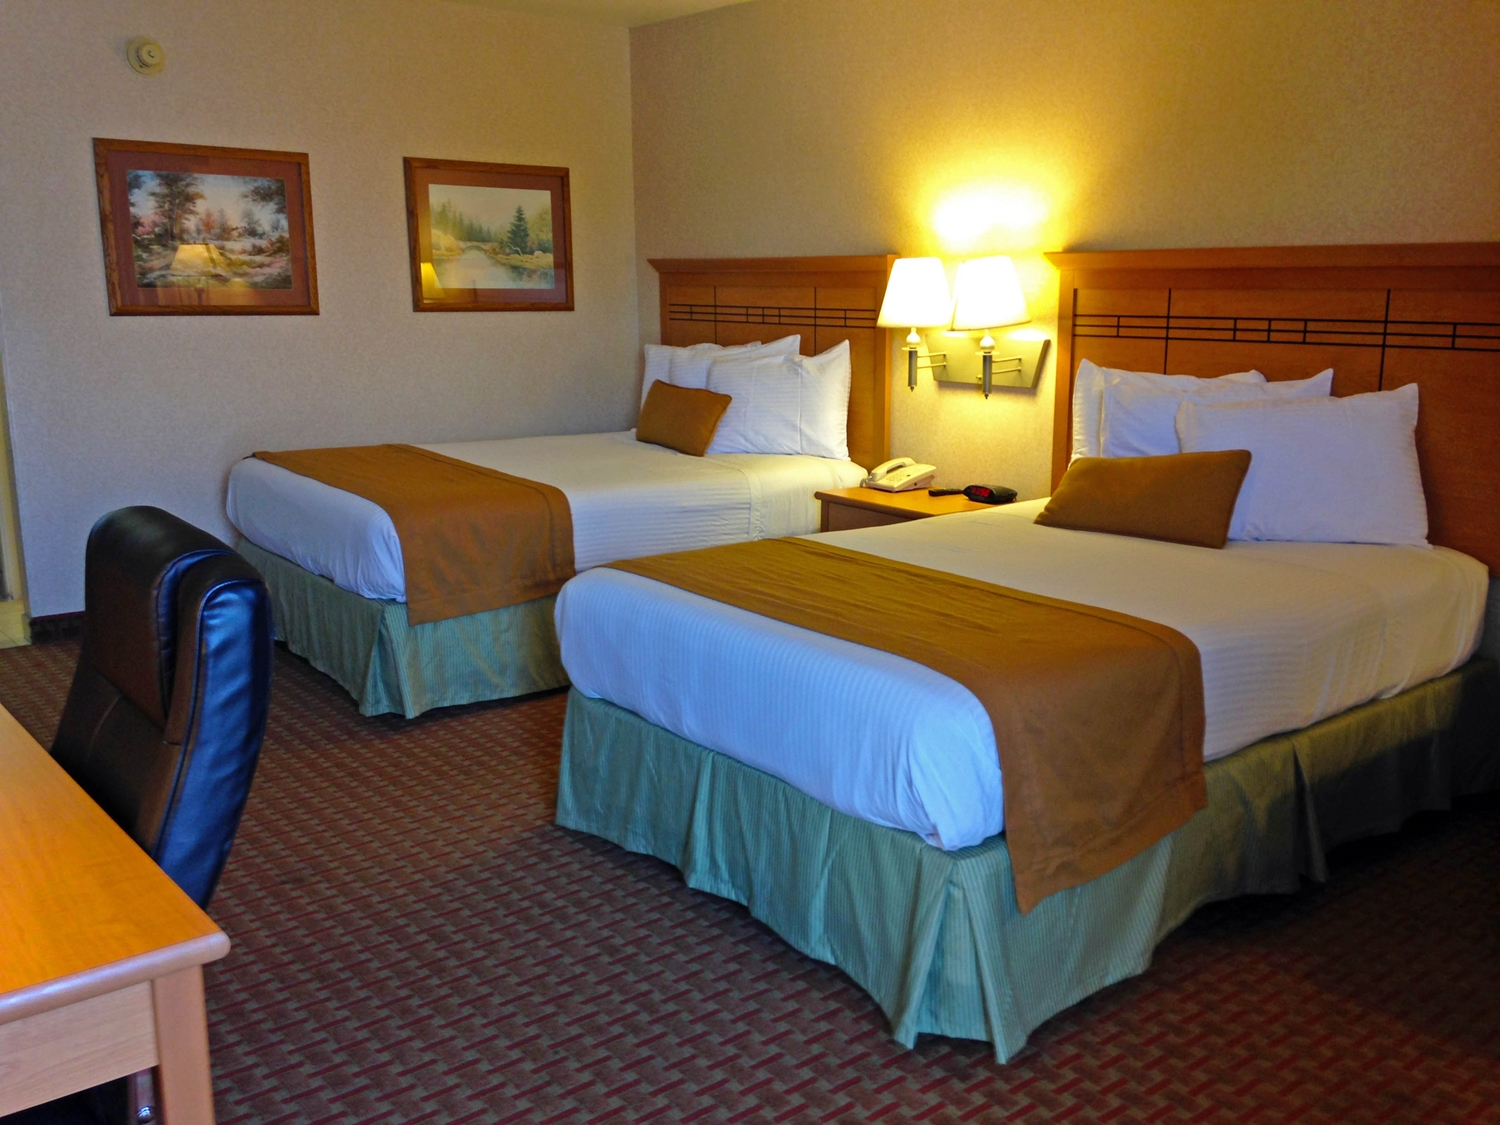 Cheap Hotel Rooms In Desoto Tx